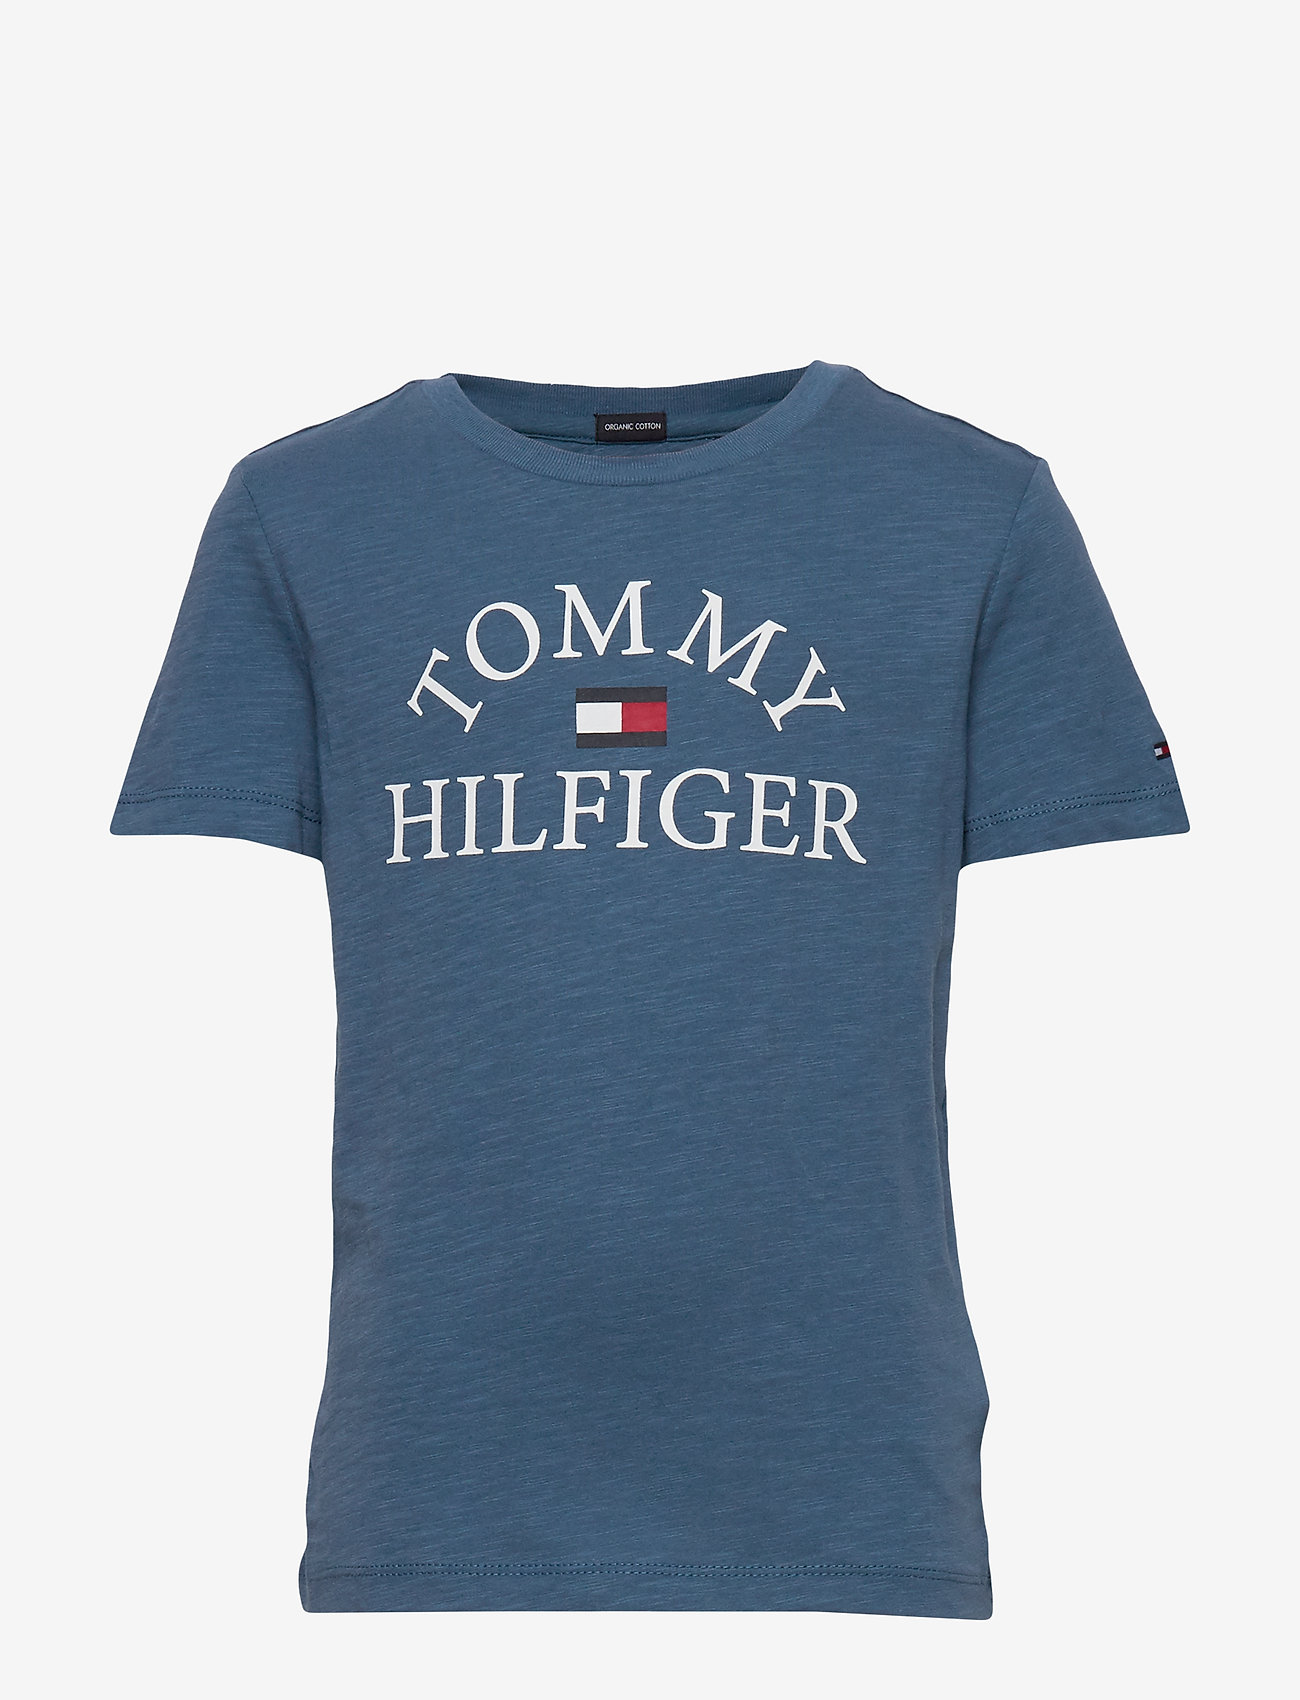 Tommy Hilfiger - ESSENTIAL LOGO TEE S - short-sleeved - audacious blue 329-710 - 0